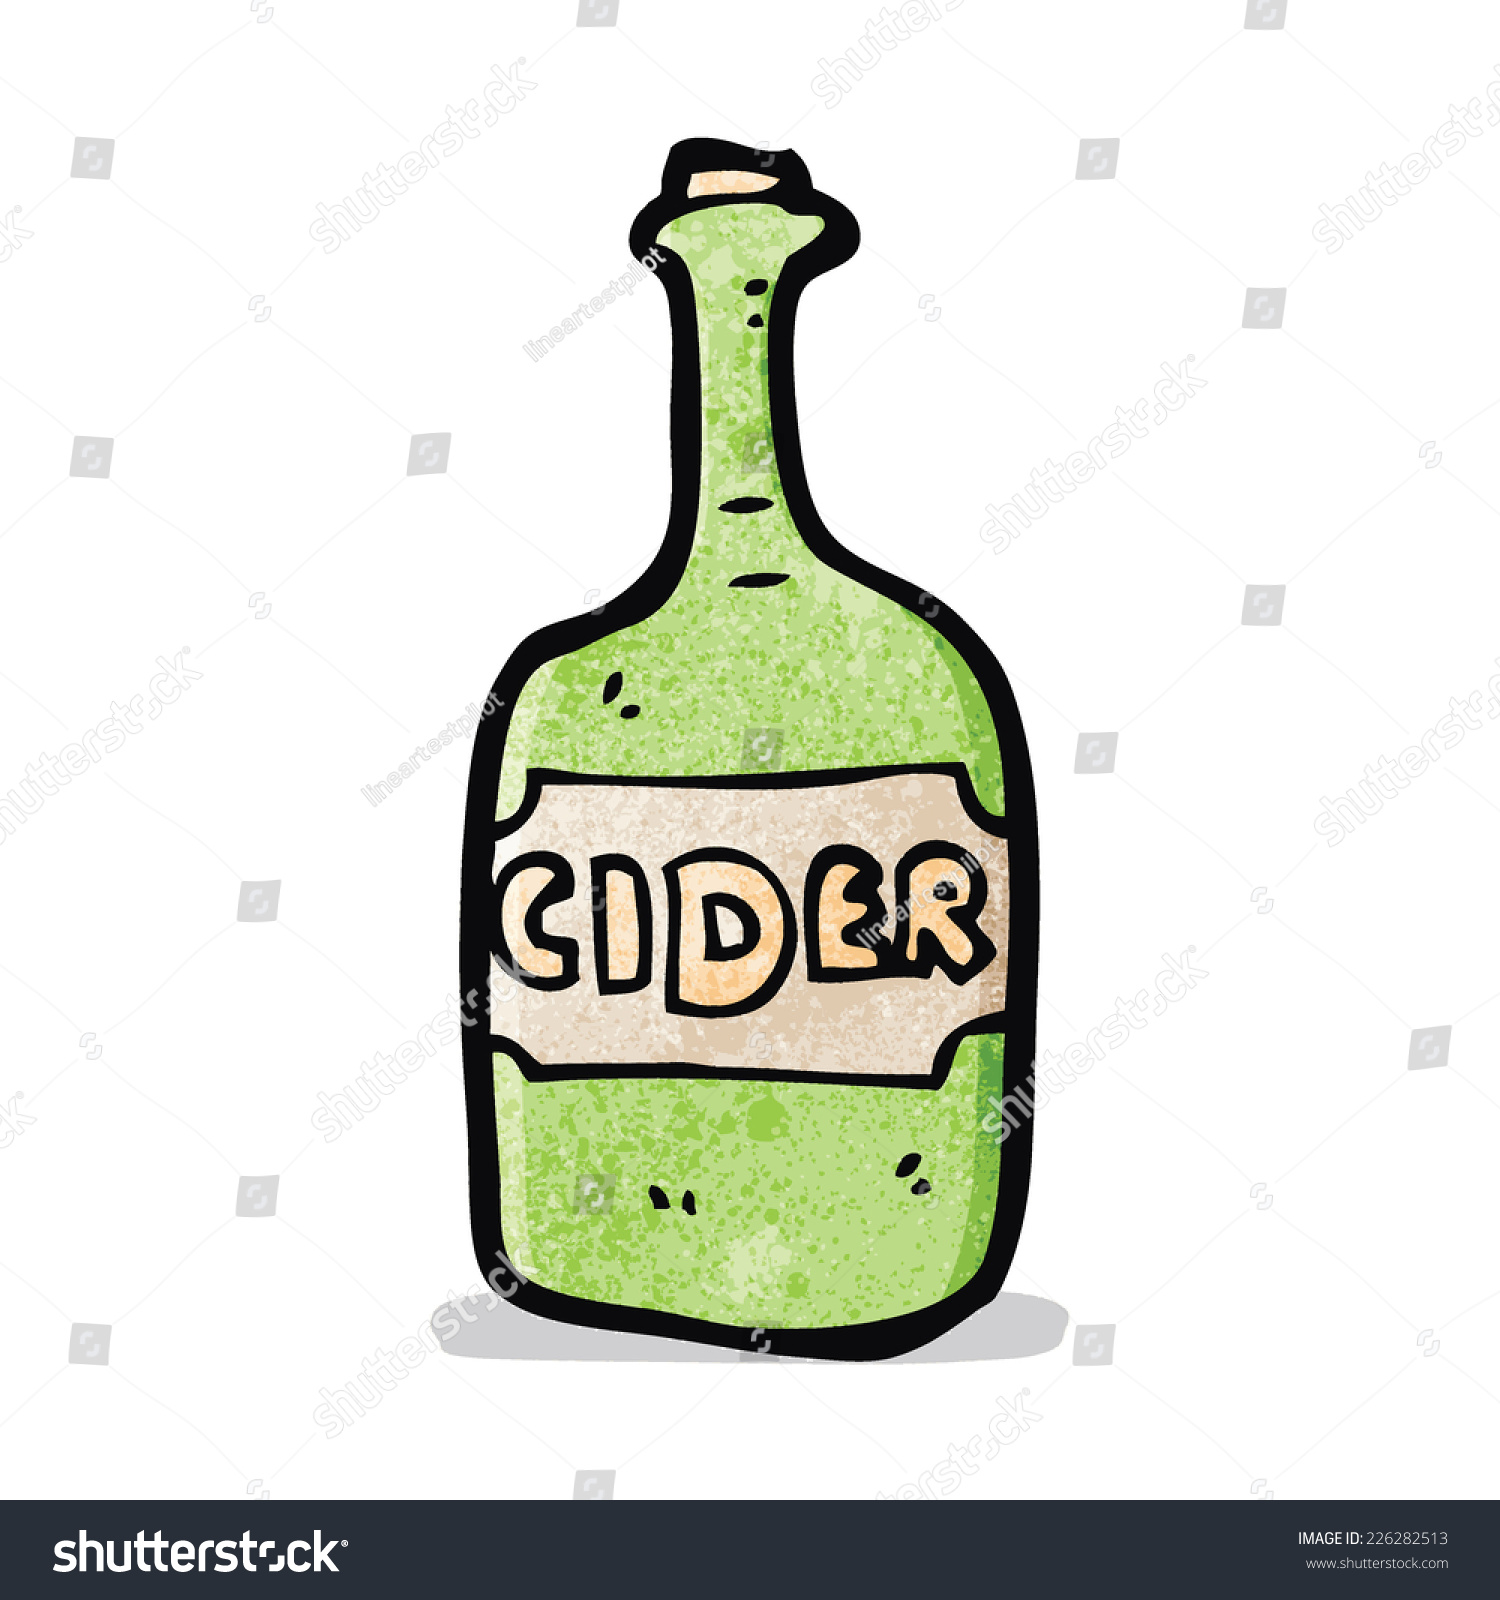 Cartoon Cider Bottle Stock Vector (Royalty Free) 226282513